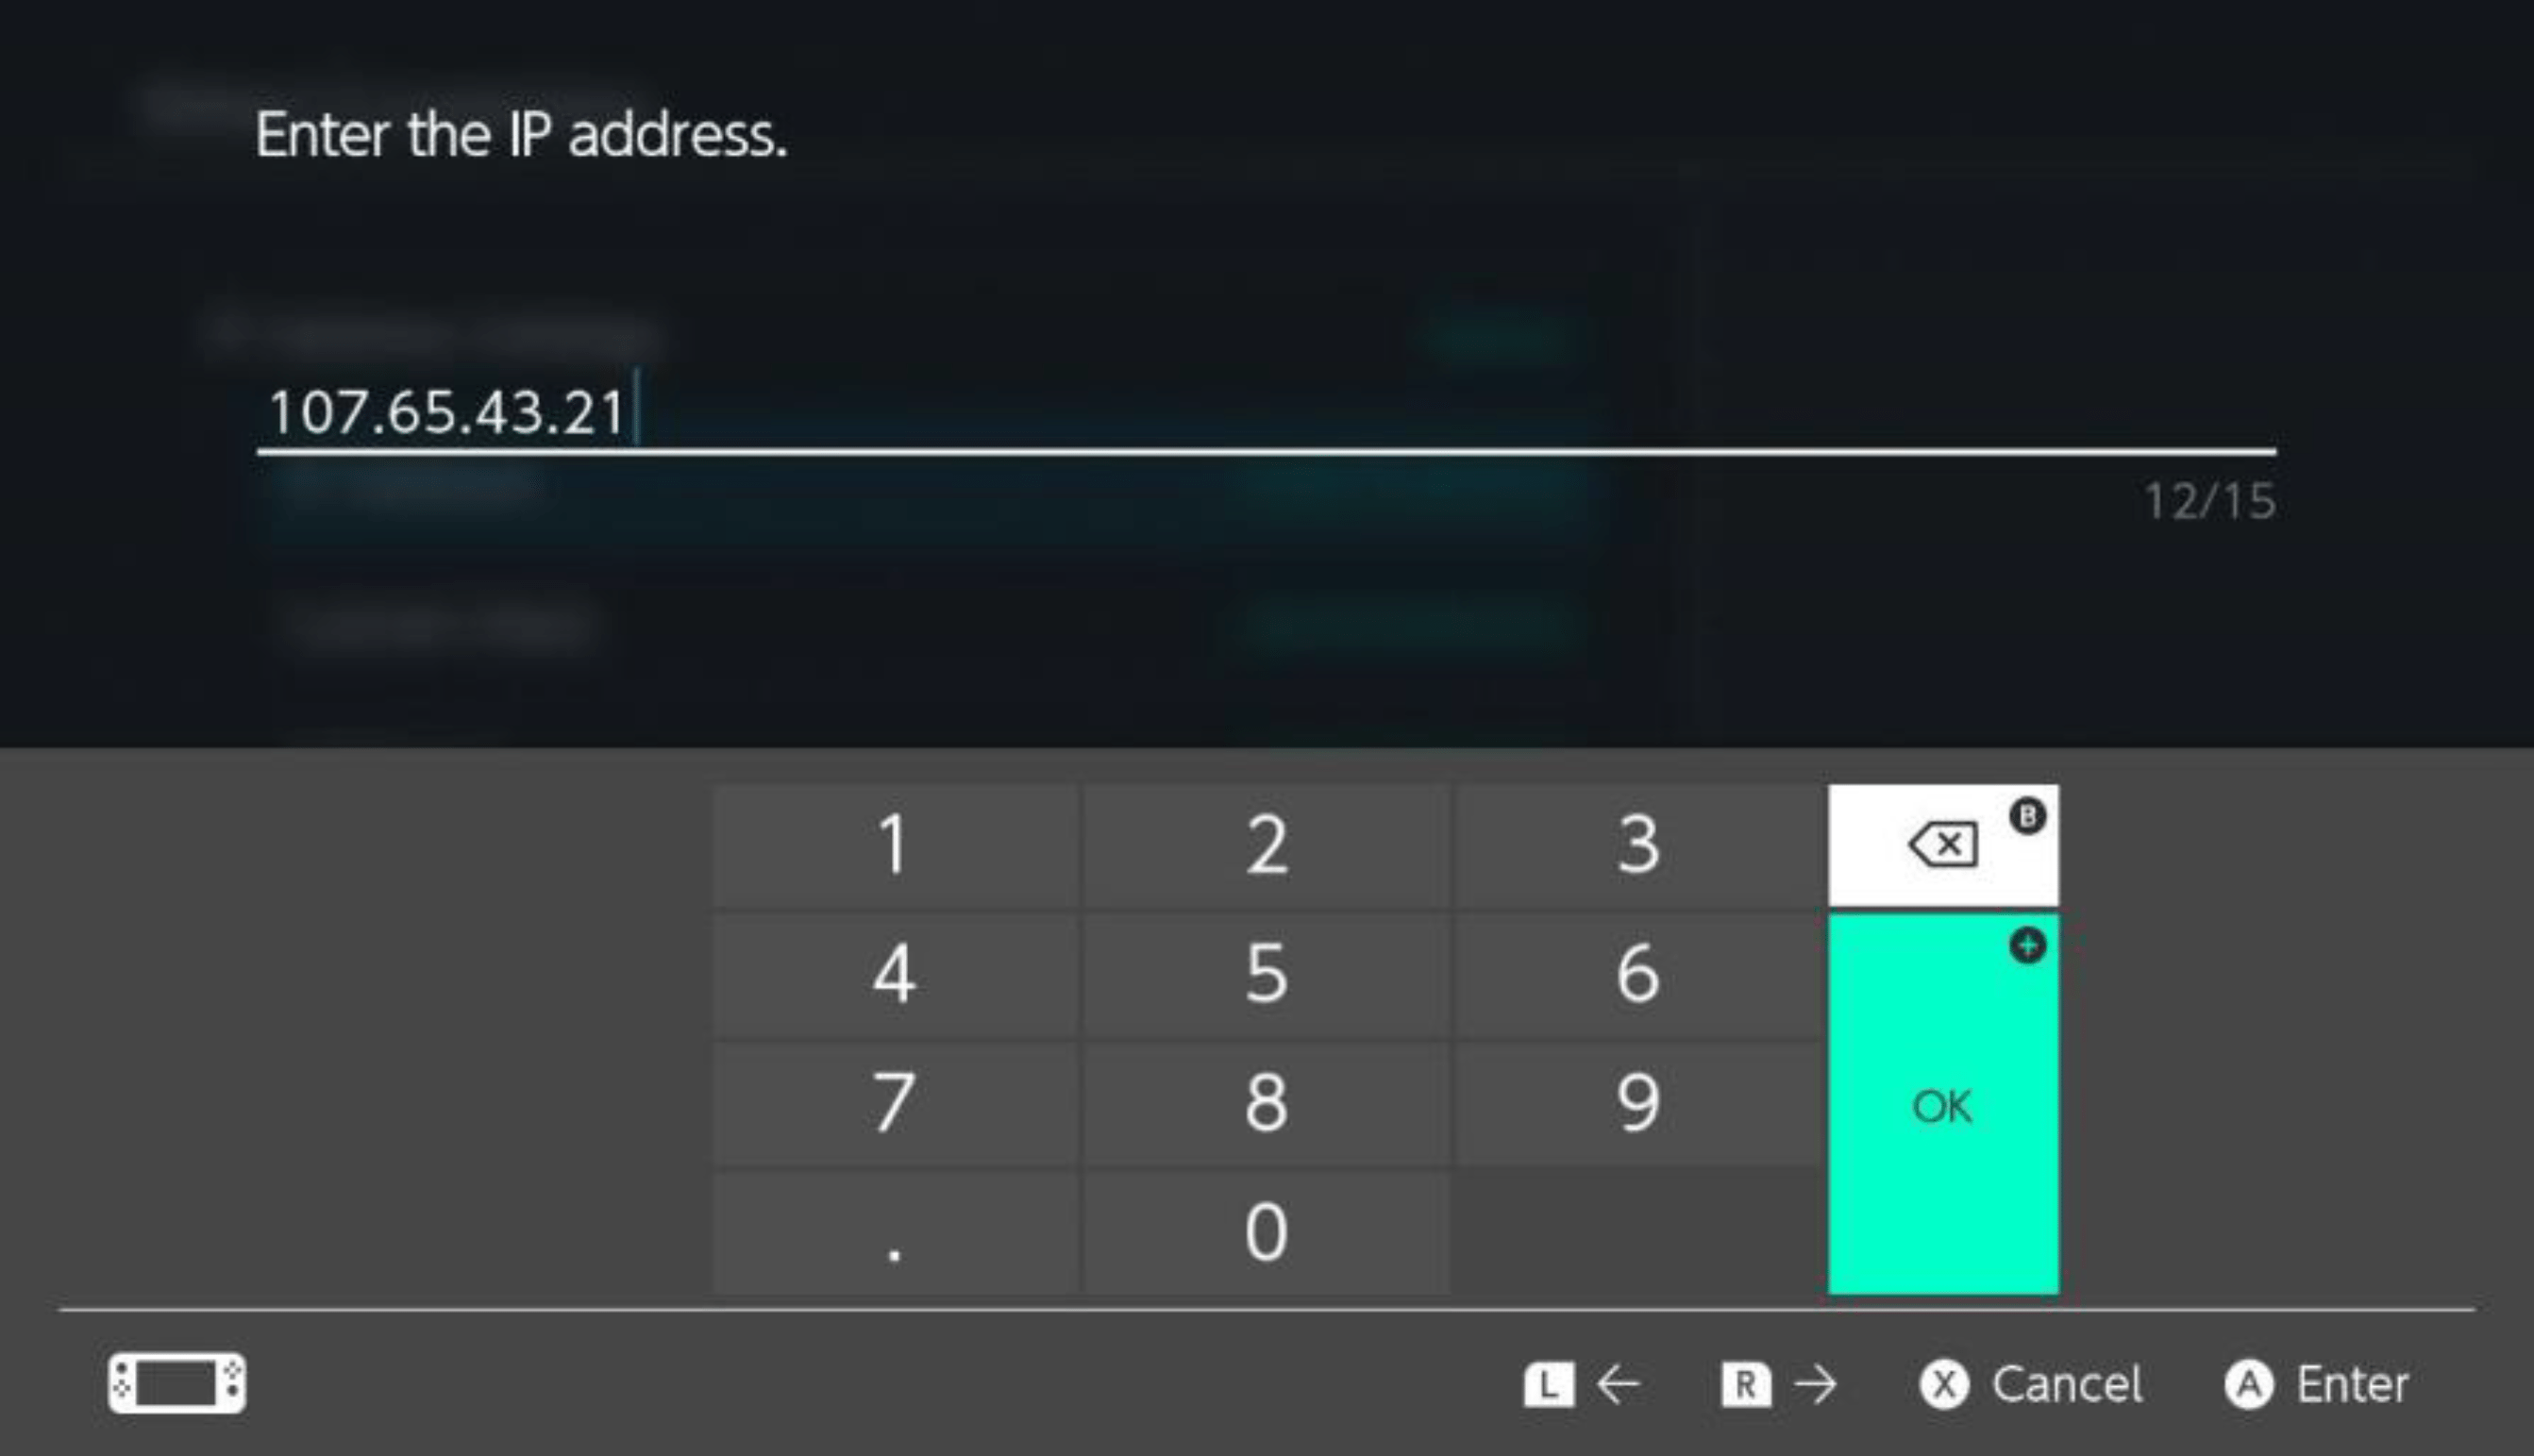 Step 6: Select 𝗜𝗣 𝗔𝗱𝗱𝗿𝗲𝘀𝘀 to set the IP address for the system. TPCi recommends constructing the IP address based on your Player ID.